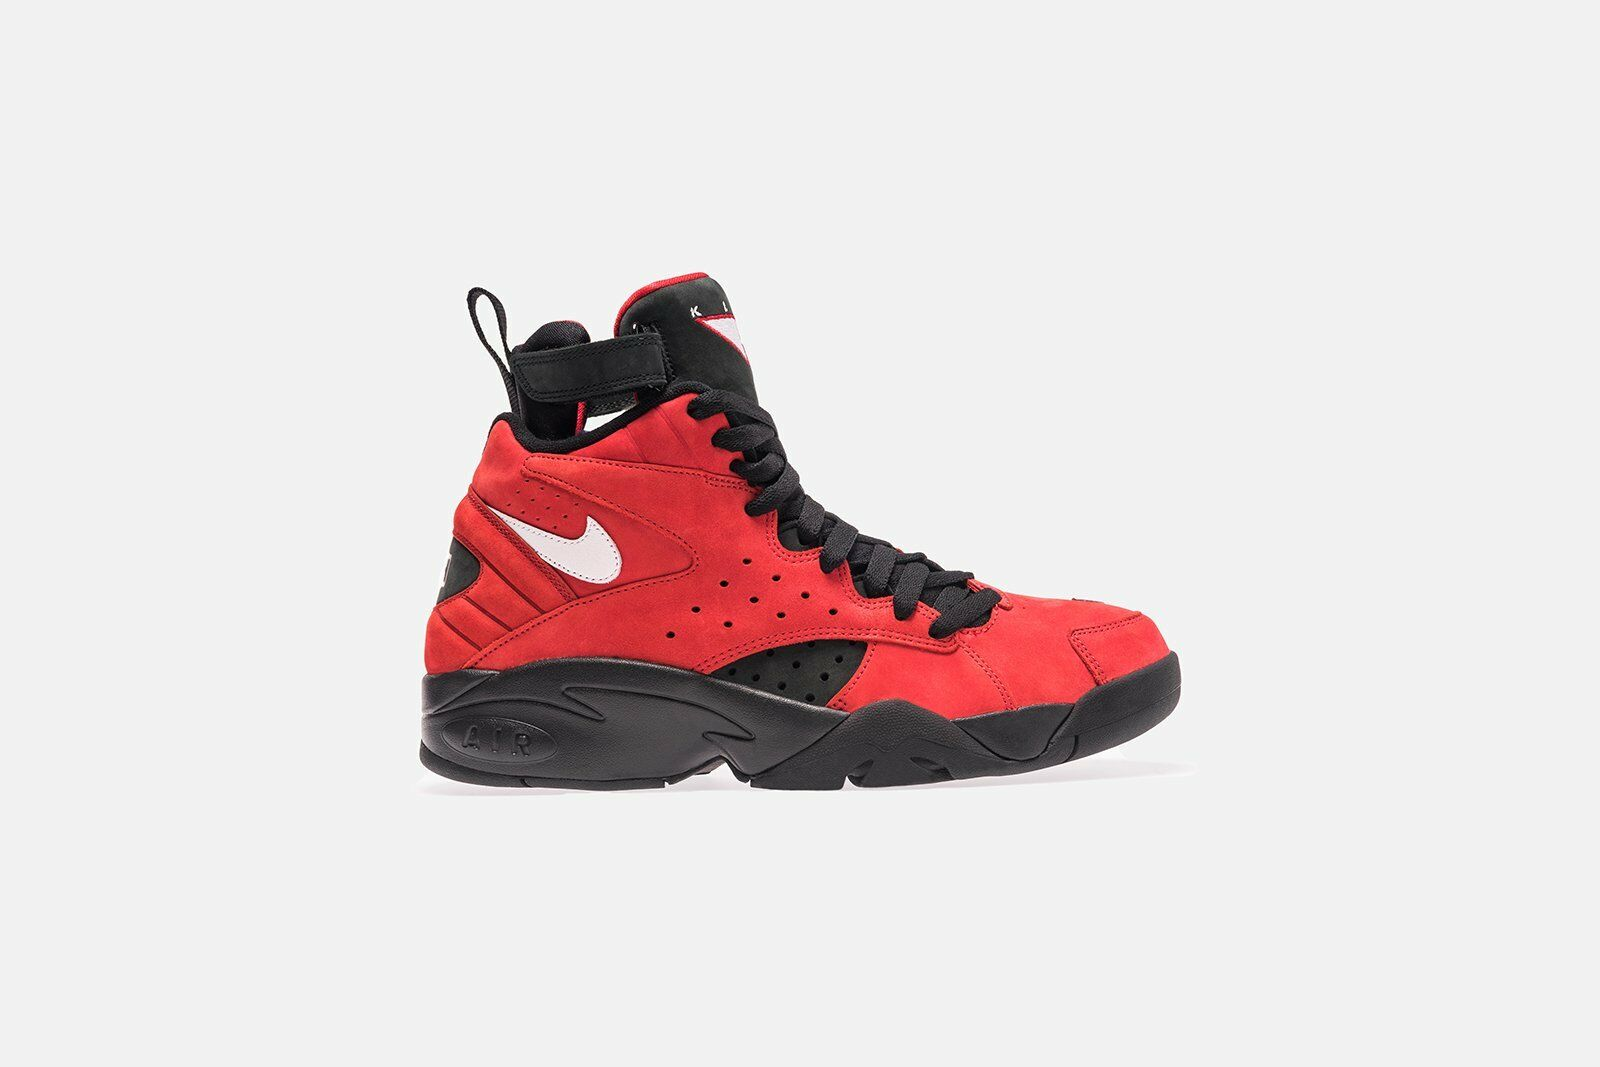 newest fc073 058e1 Kith x Nike Air Maestro II 2 High Red Black Take Flight Size 11.5 BRAND NEW  1 of 2Only 1 available ...